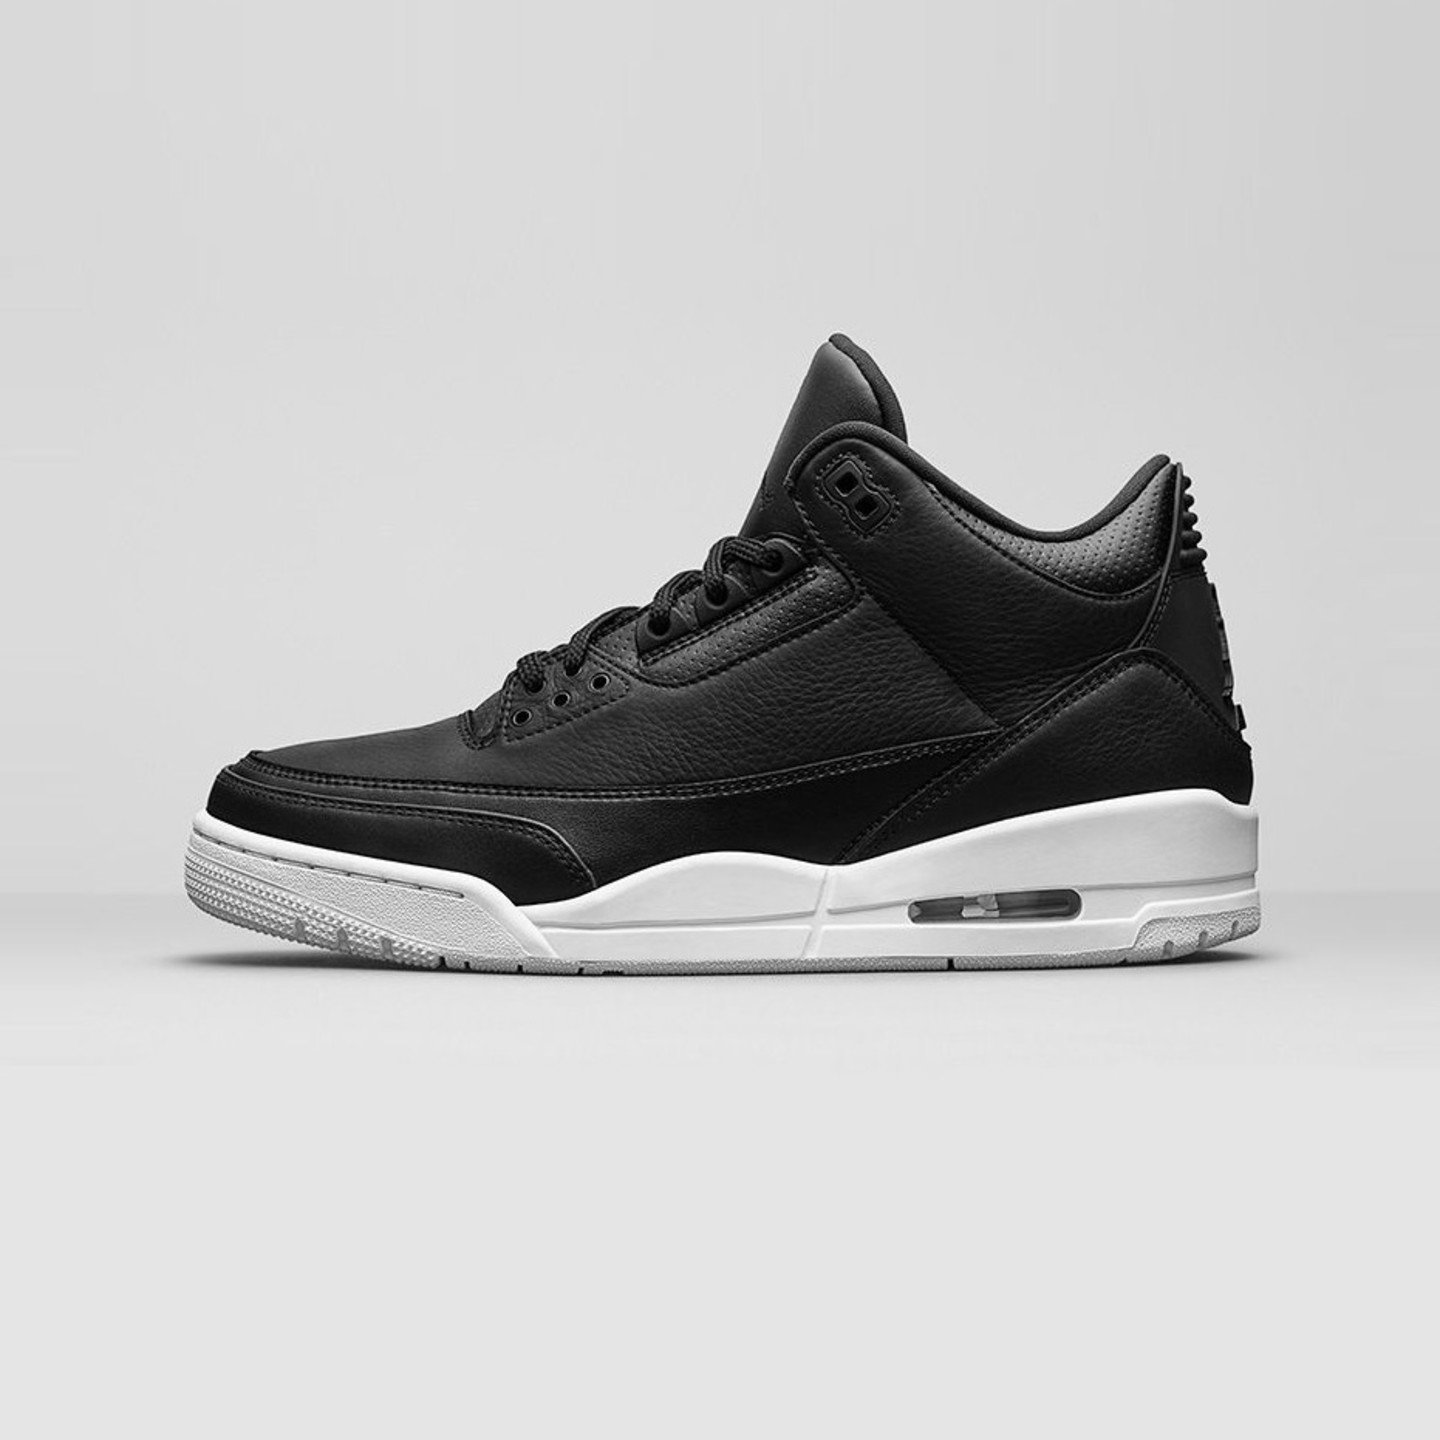 Jordan Air Jordan 3 Retro BG 'Cyber Monday' Black / White 398614-020-38.5